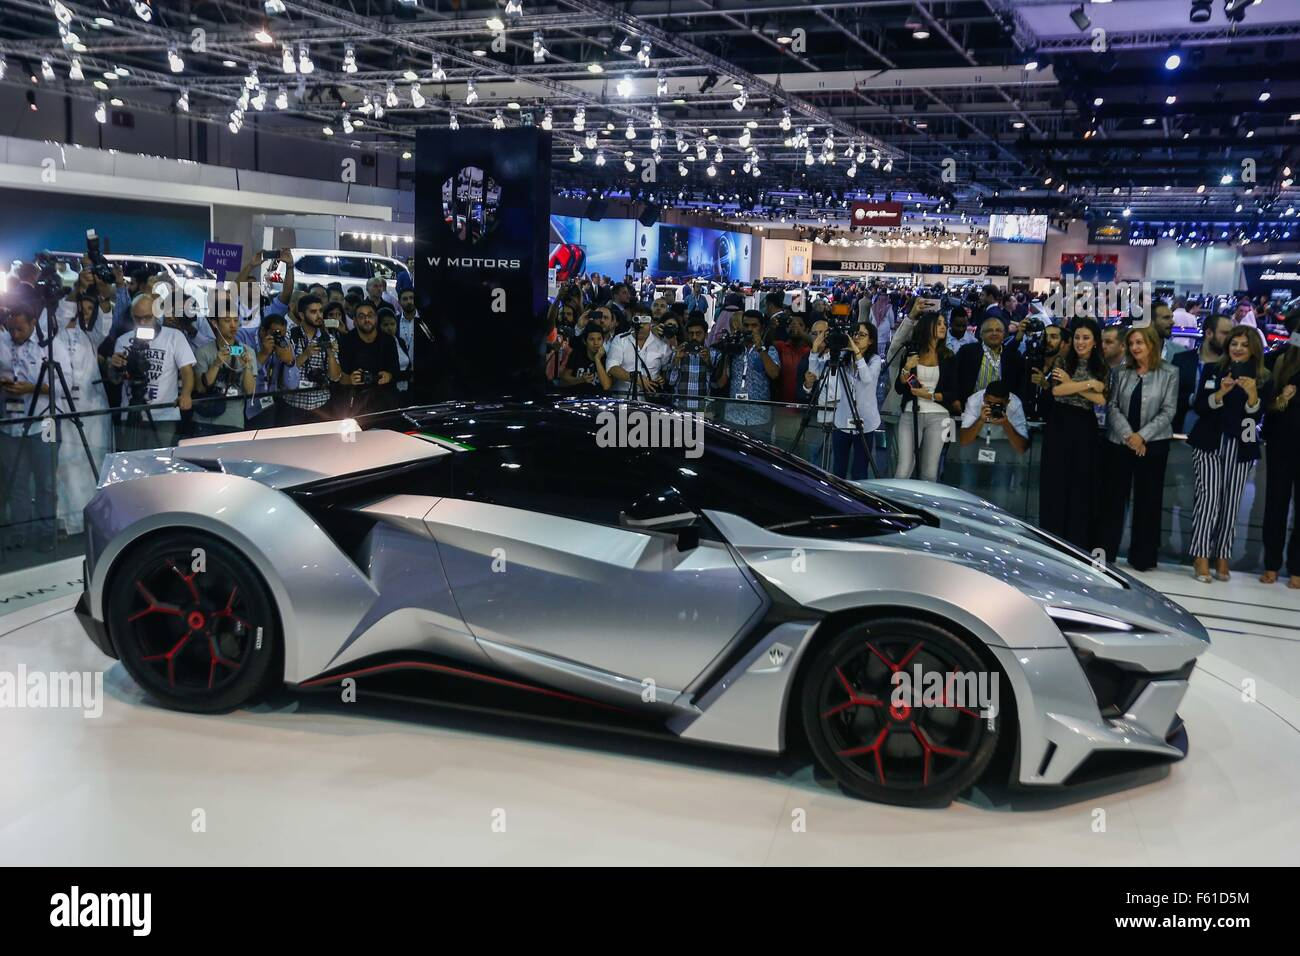 Dubai, United Arab Emirates. 10th Nov, 2015. A Sports Car Is Seen  Displaying At The Dubai International Motor Show In Dubai, The United Arab  Emirates, Nov.